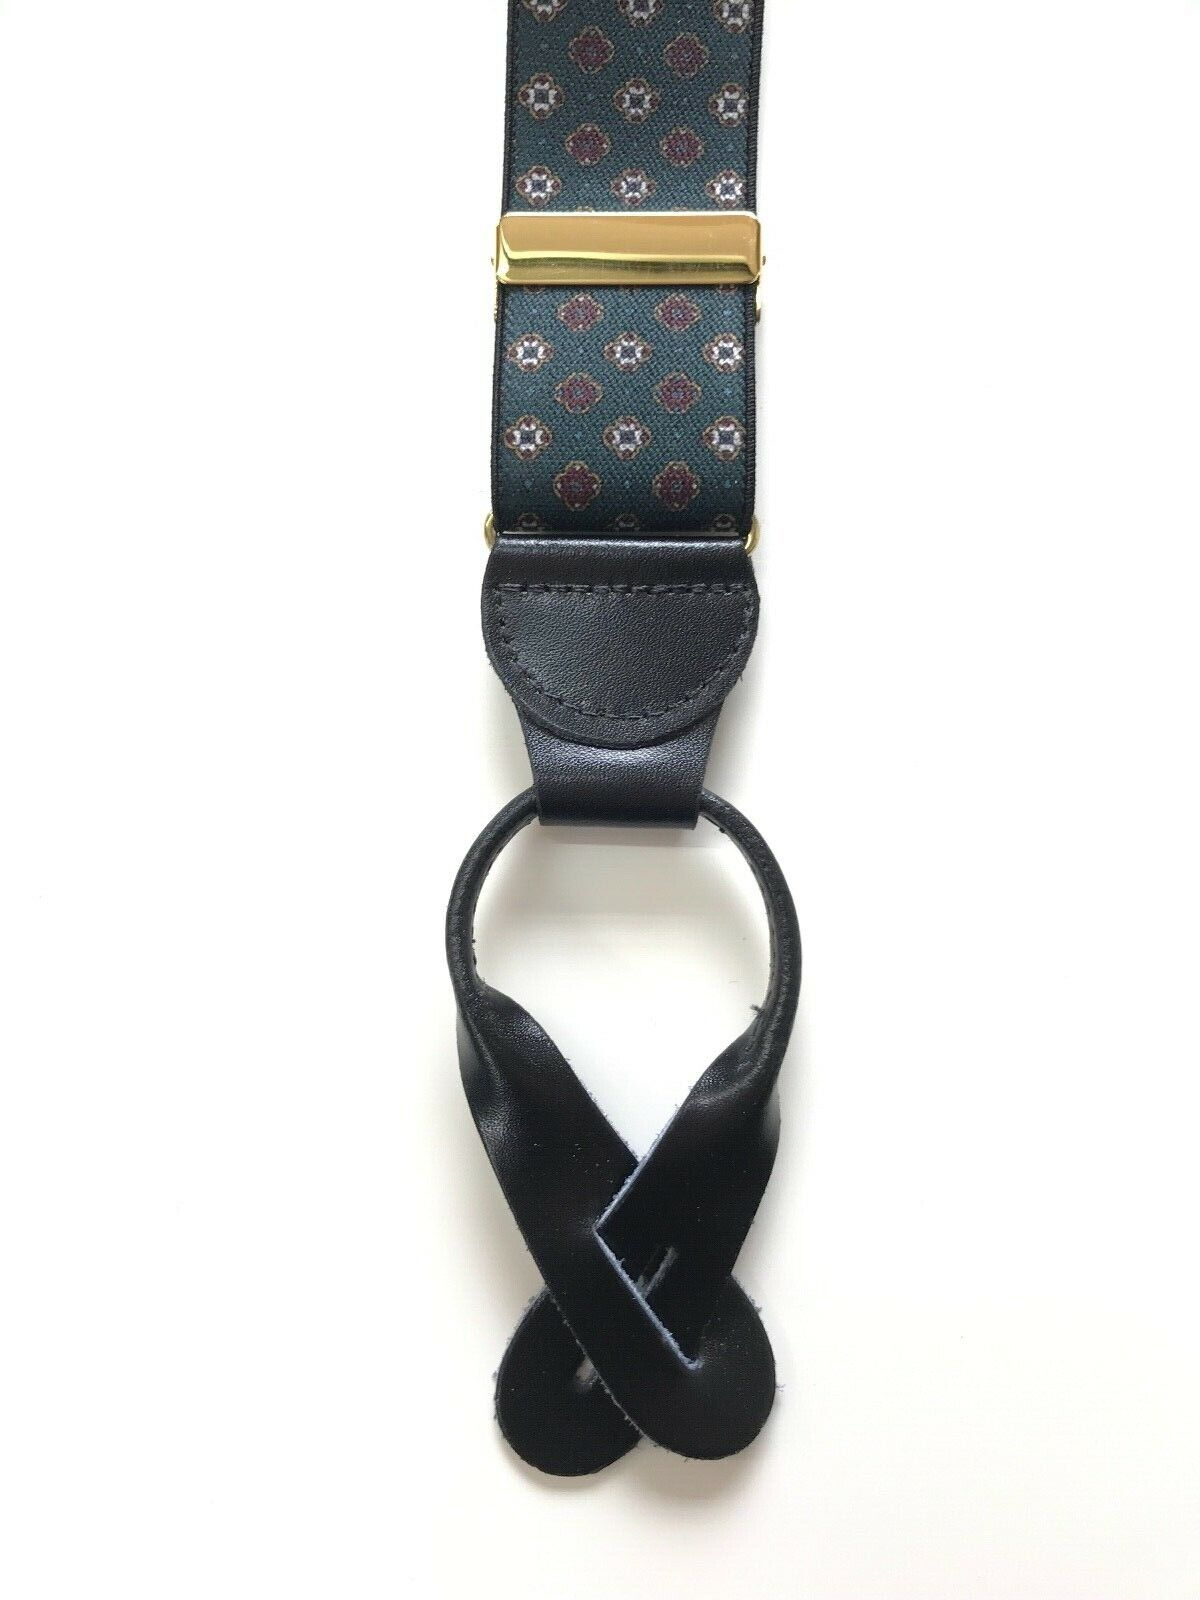 2 Colours Men's Suspenders/Braces with Leather Fastening - 3,5cm Wide - 56